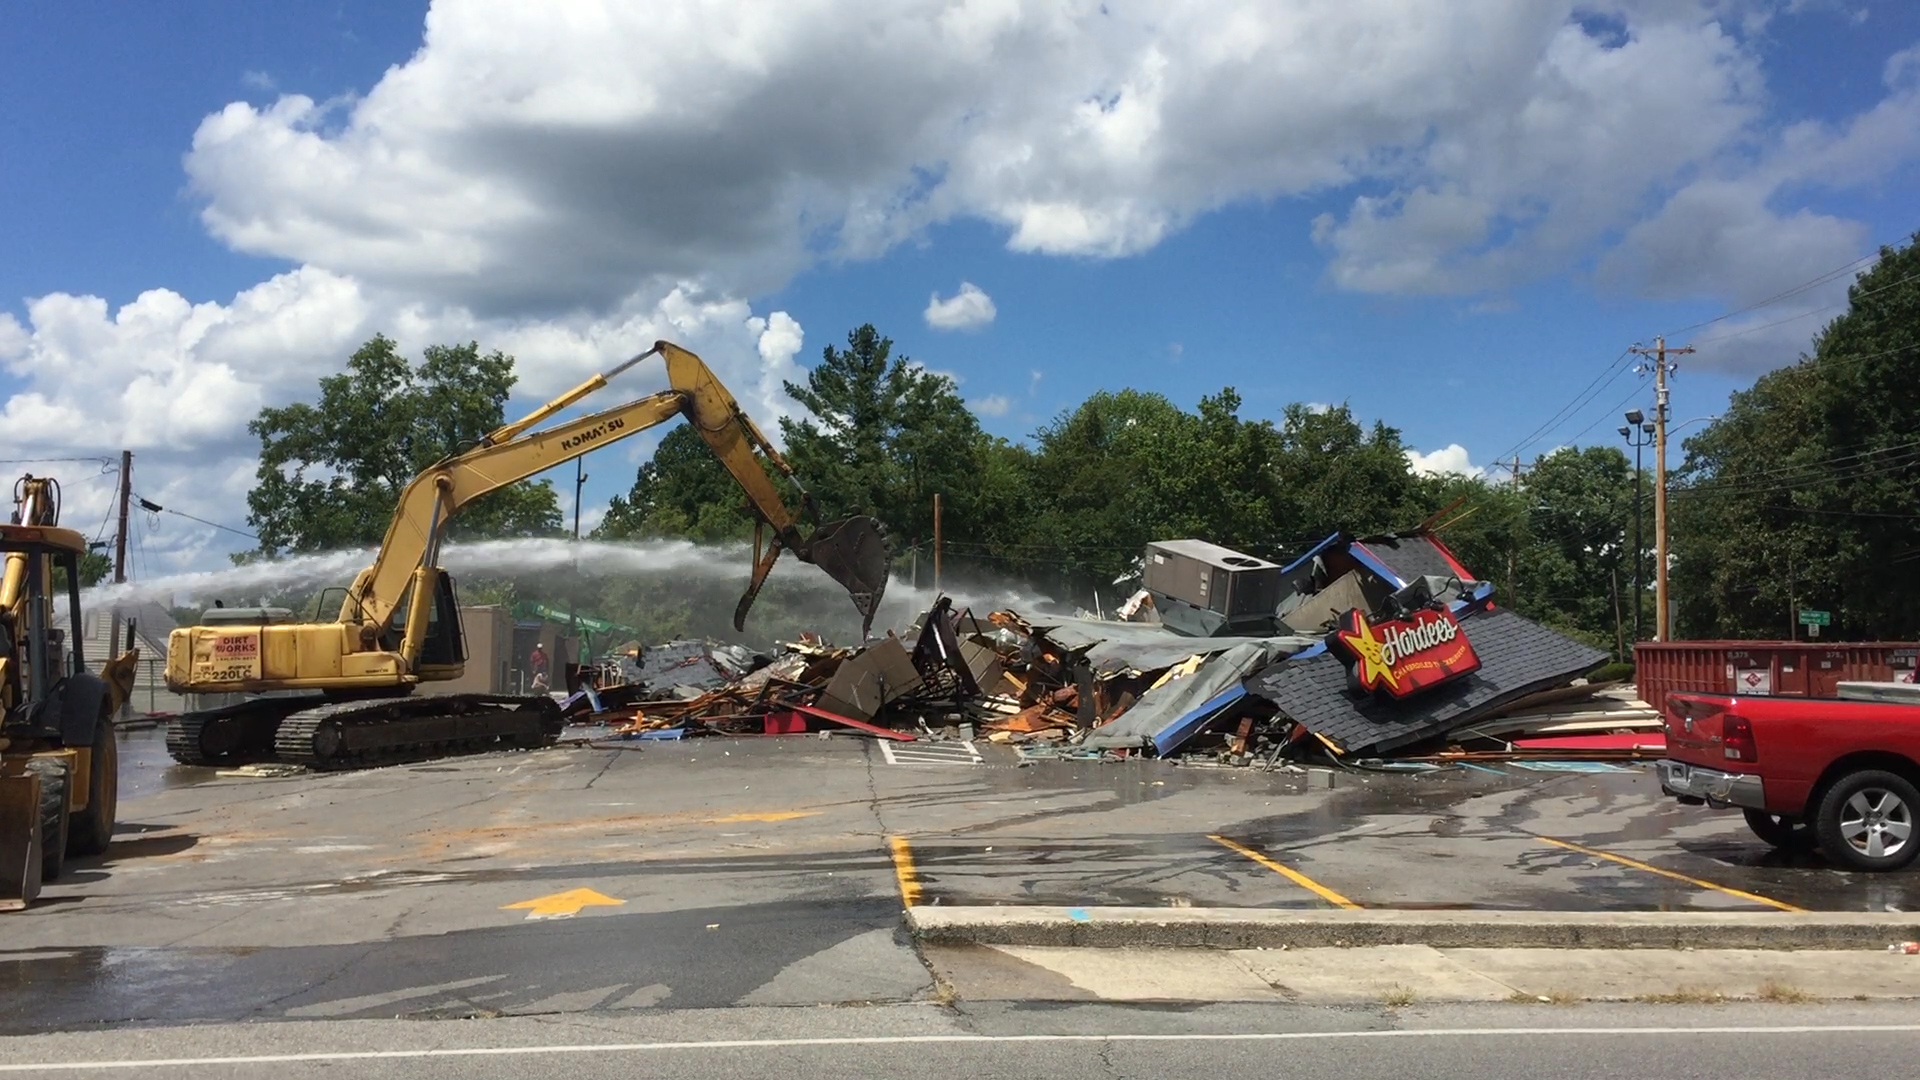 VIDEO - Completion of Hardee's demolition